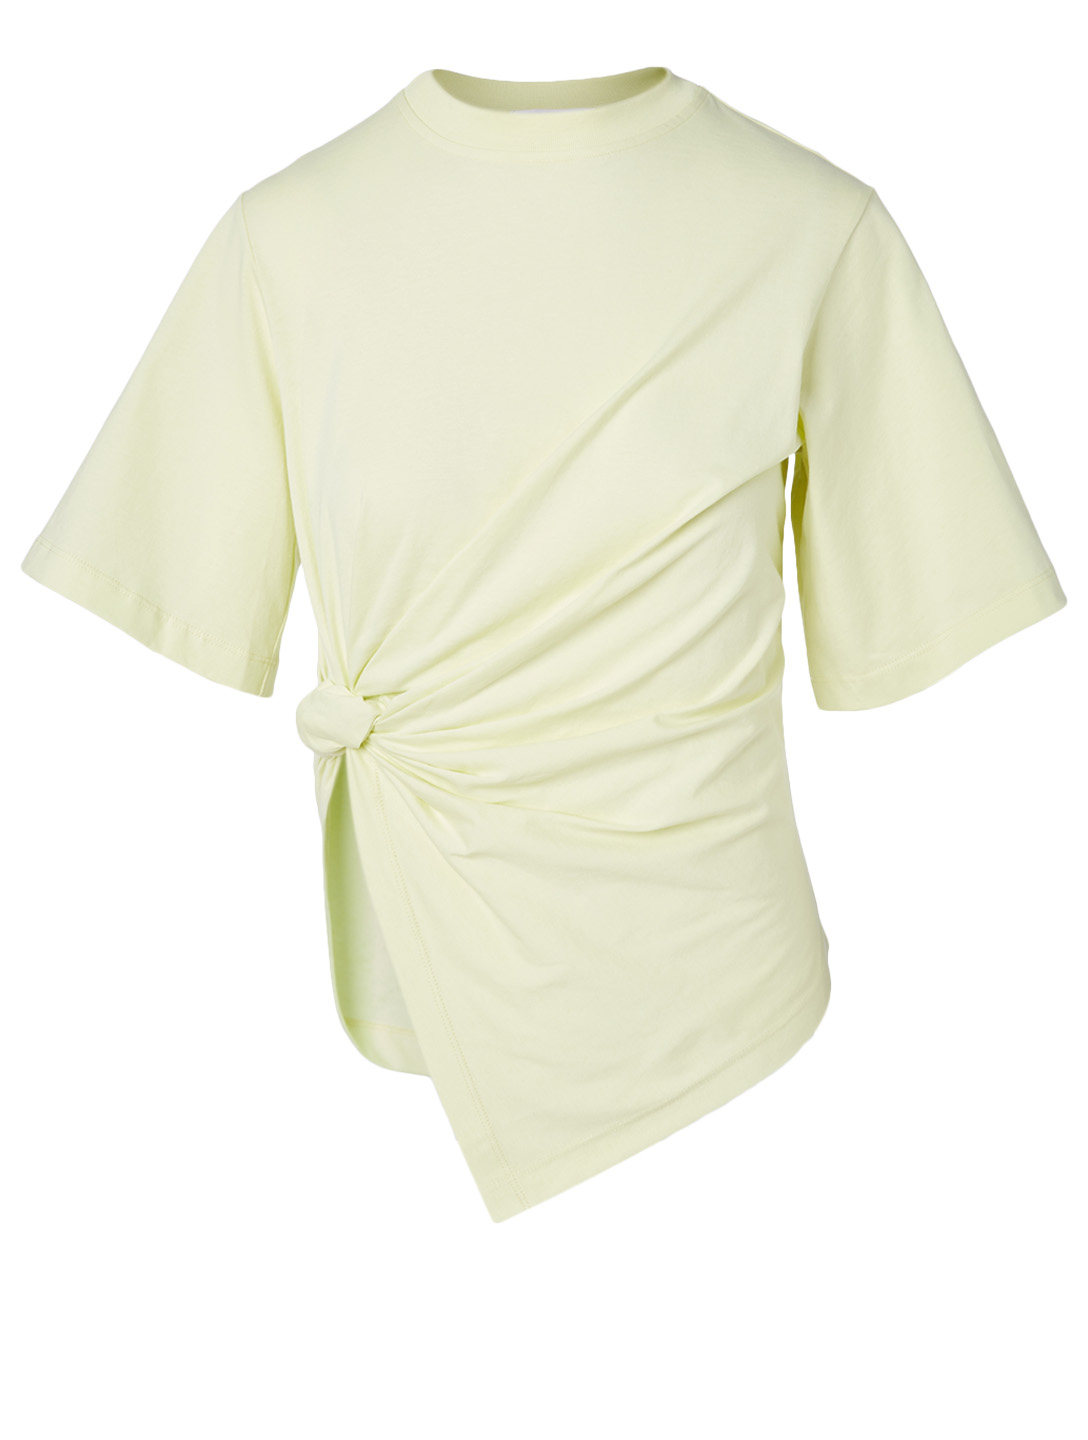 SEE BY CHLOÉ Cotton Knotted T-Shirt Women's Green